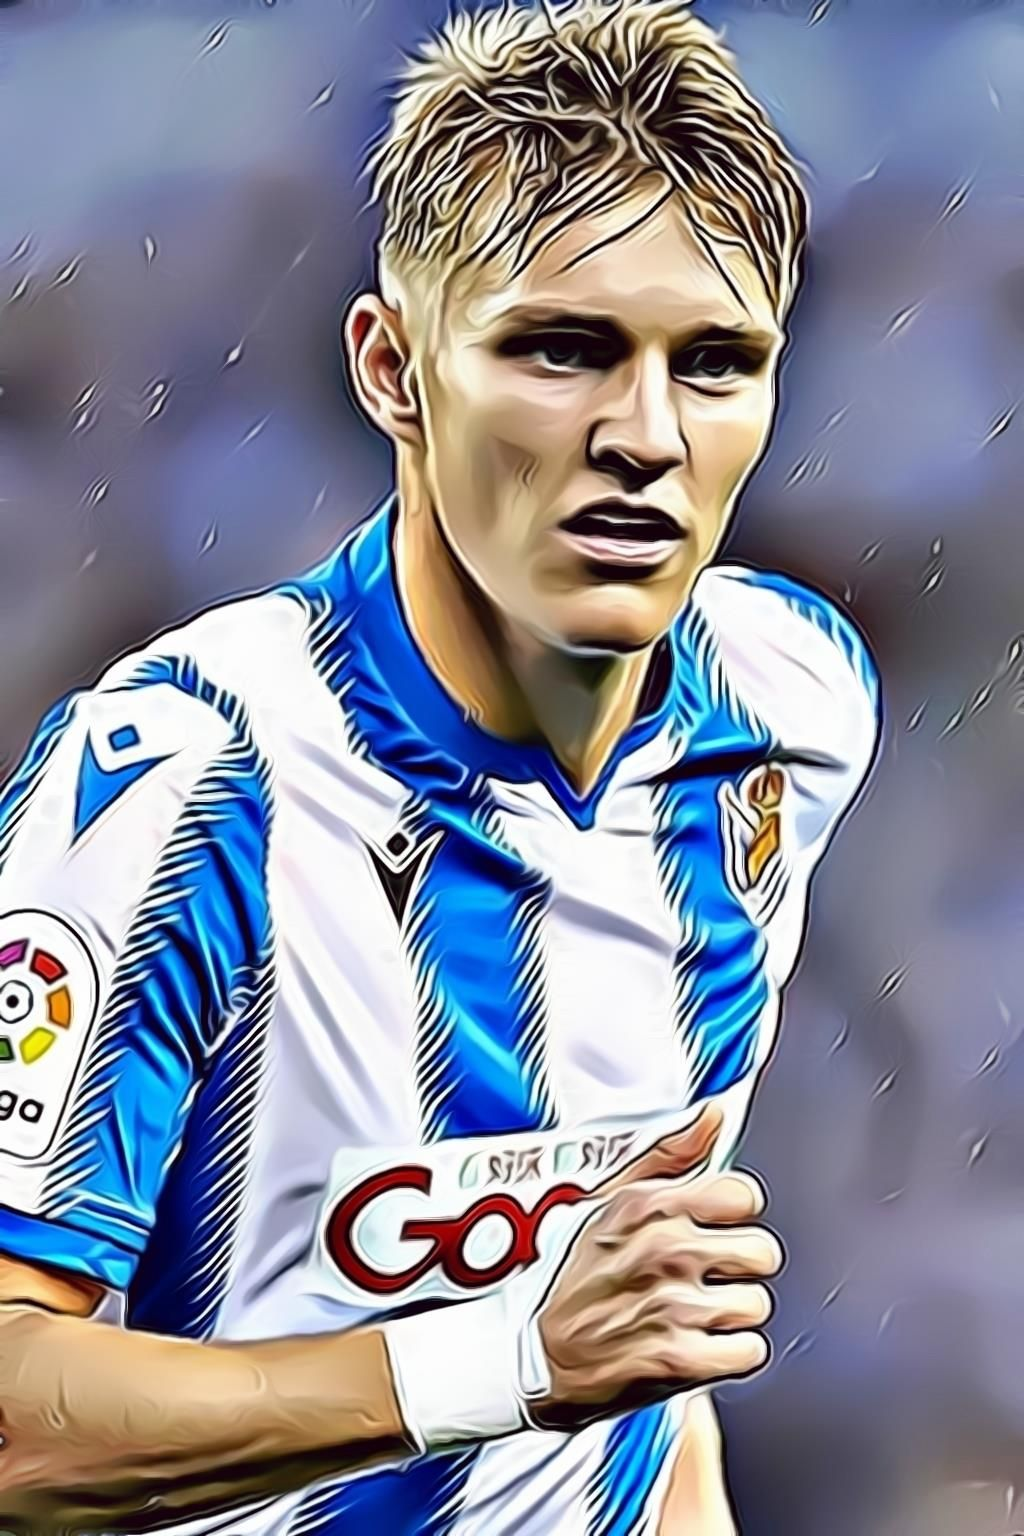 Real Madrid Remember Martin Odegaard Of Real Sociedad Early Martin Odegaard Real Madrid Real Sociedad